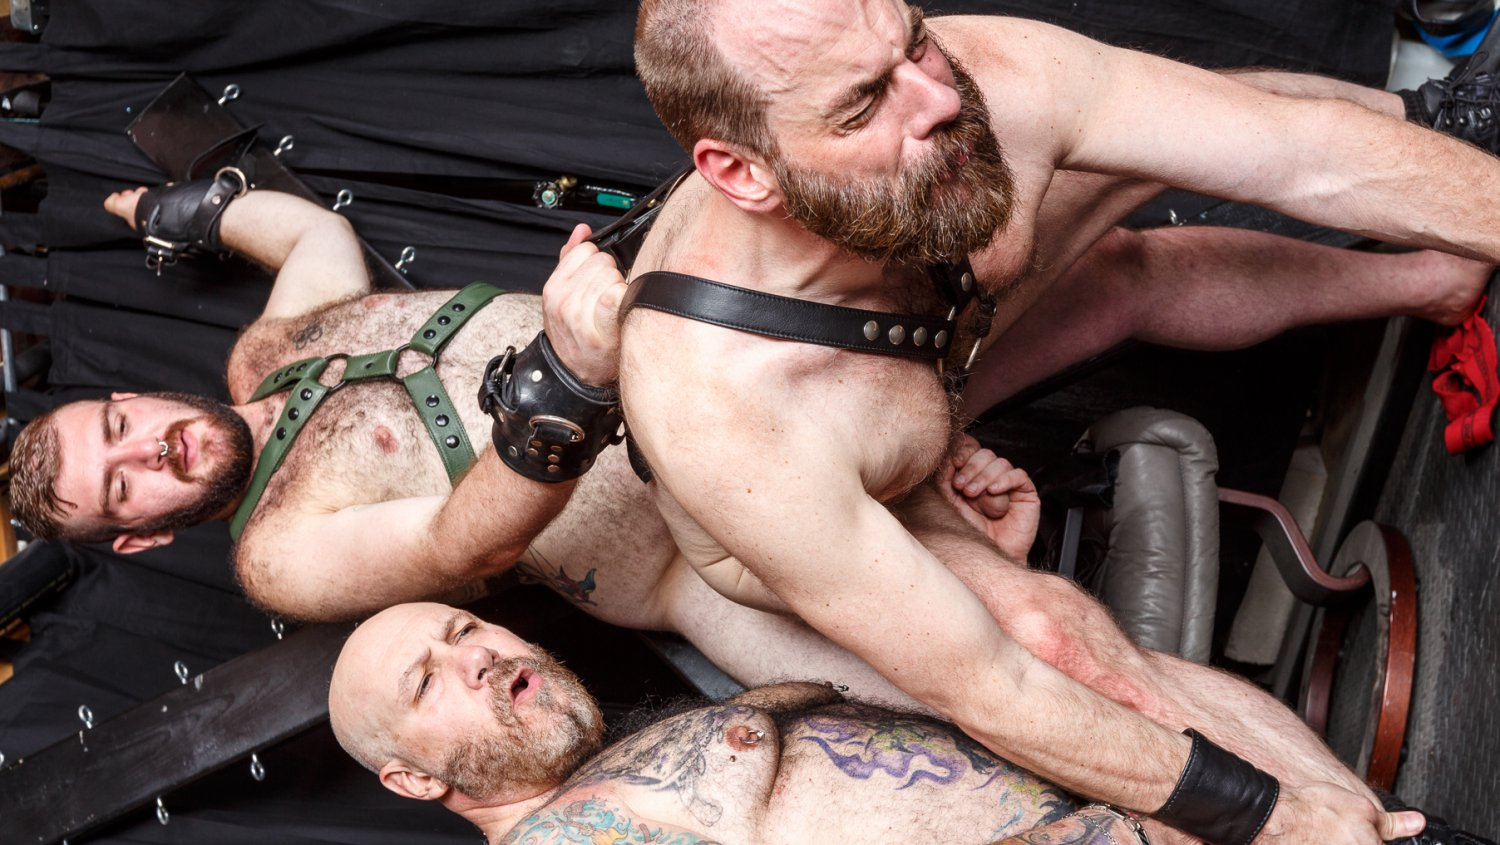 Daddy Cub, Steve Sommers, and Daddy Lucas - Part 2 - BearFilms Naked penis and vegina